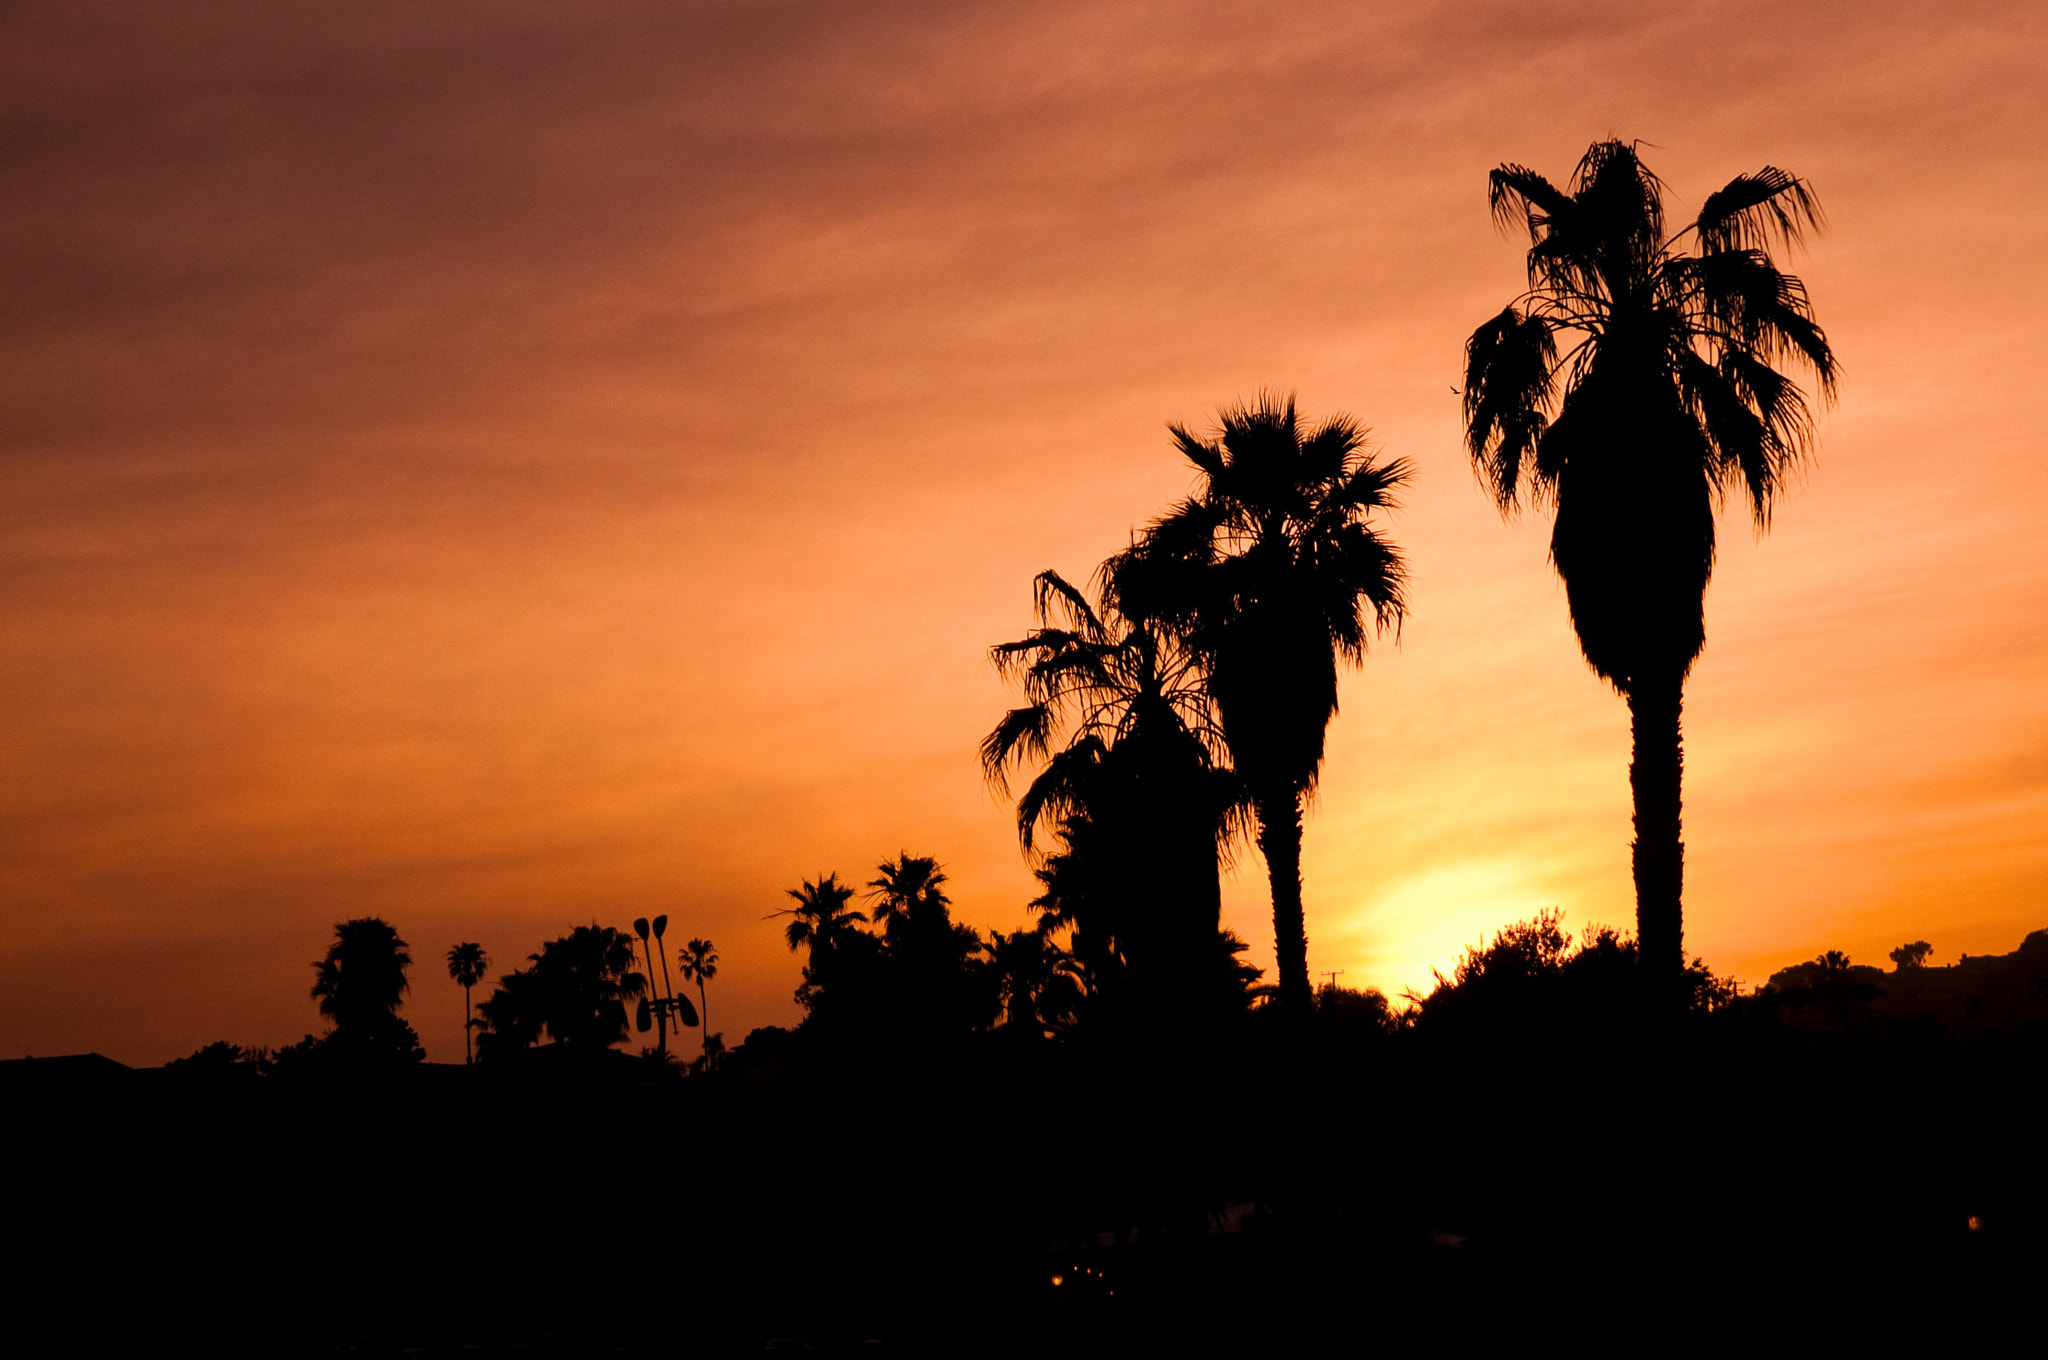 Photograph Palm Trees in the Sun by Karl Johnson on 500px